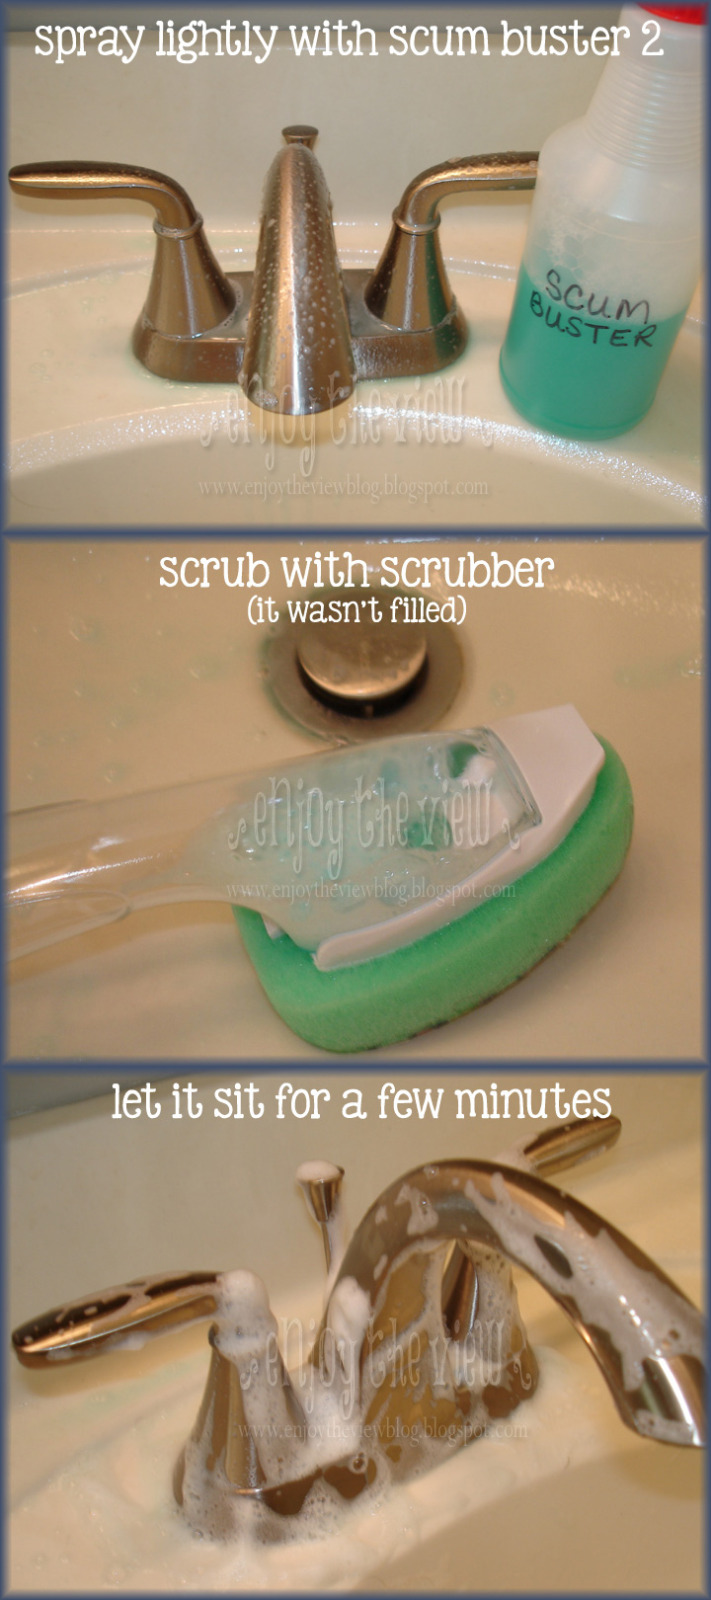 steps to using scum buster solution